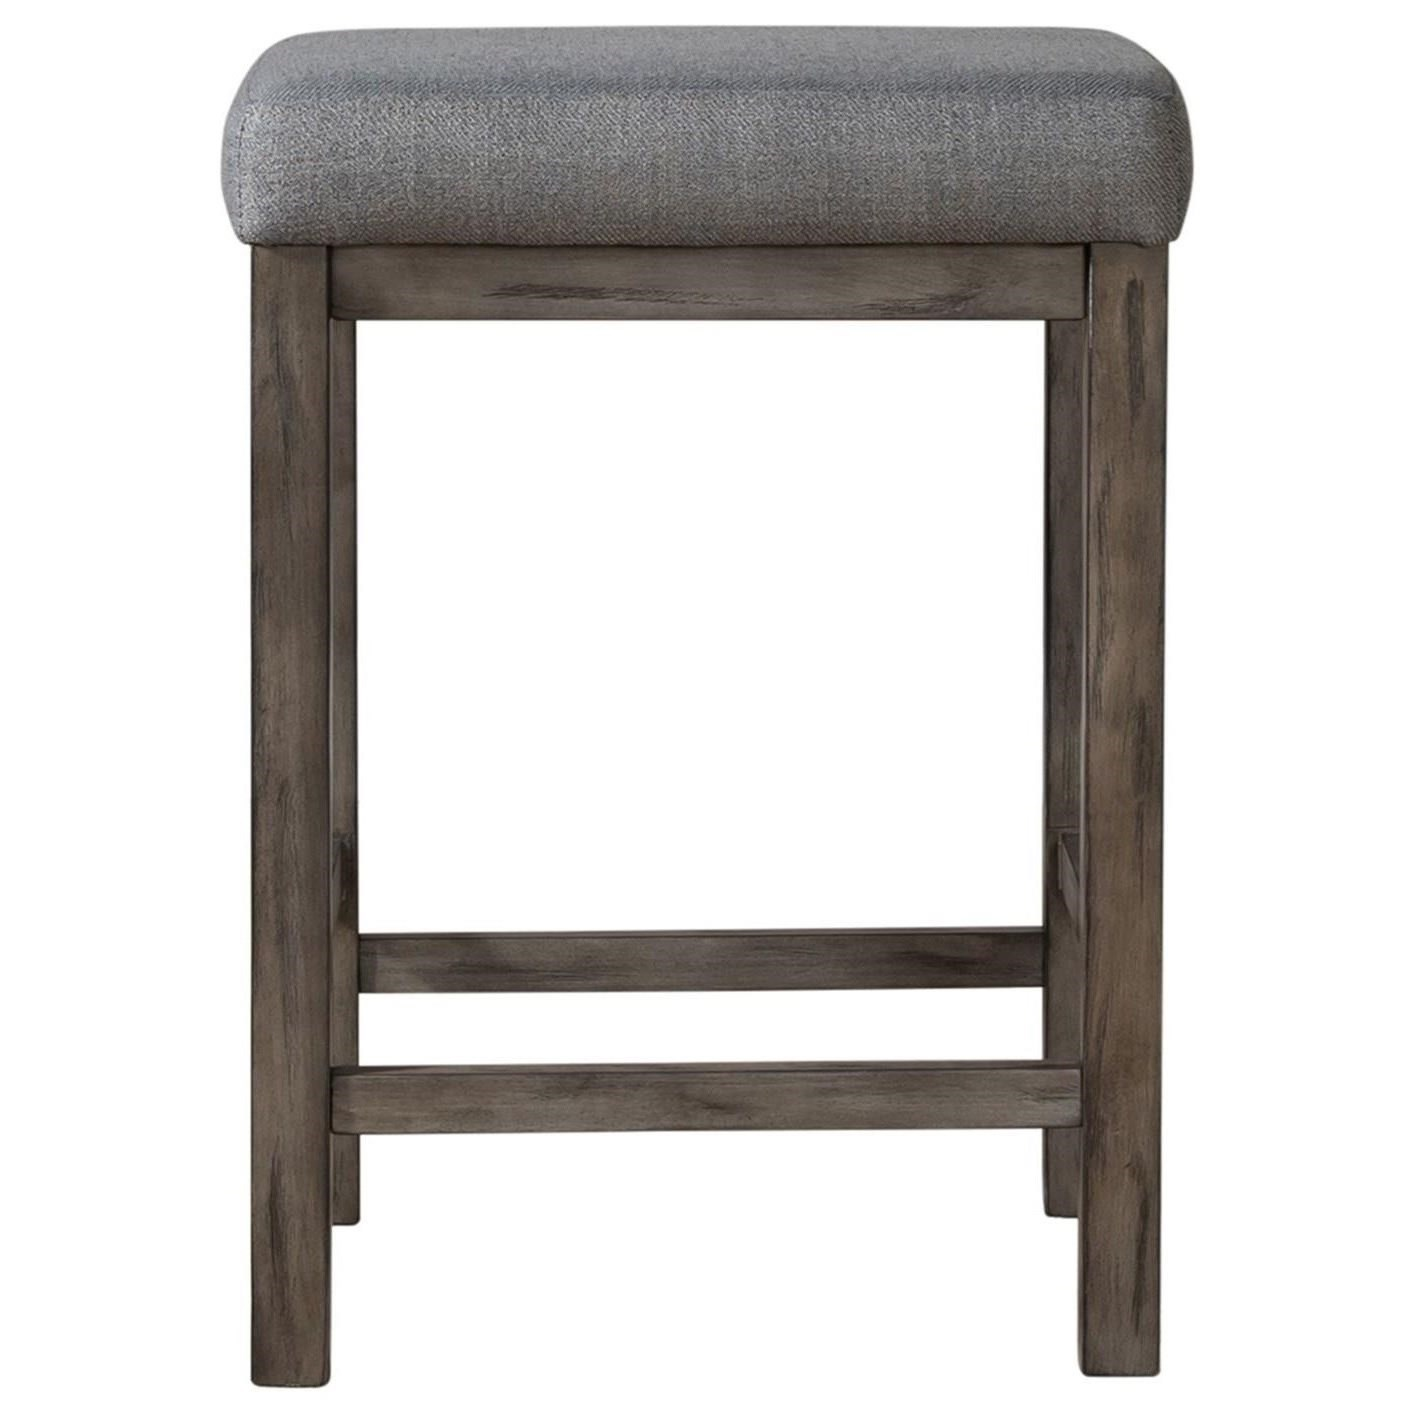 Hayden Way Upholstered Console Stool by Libby at Walker's Furniture